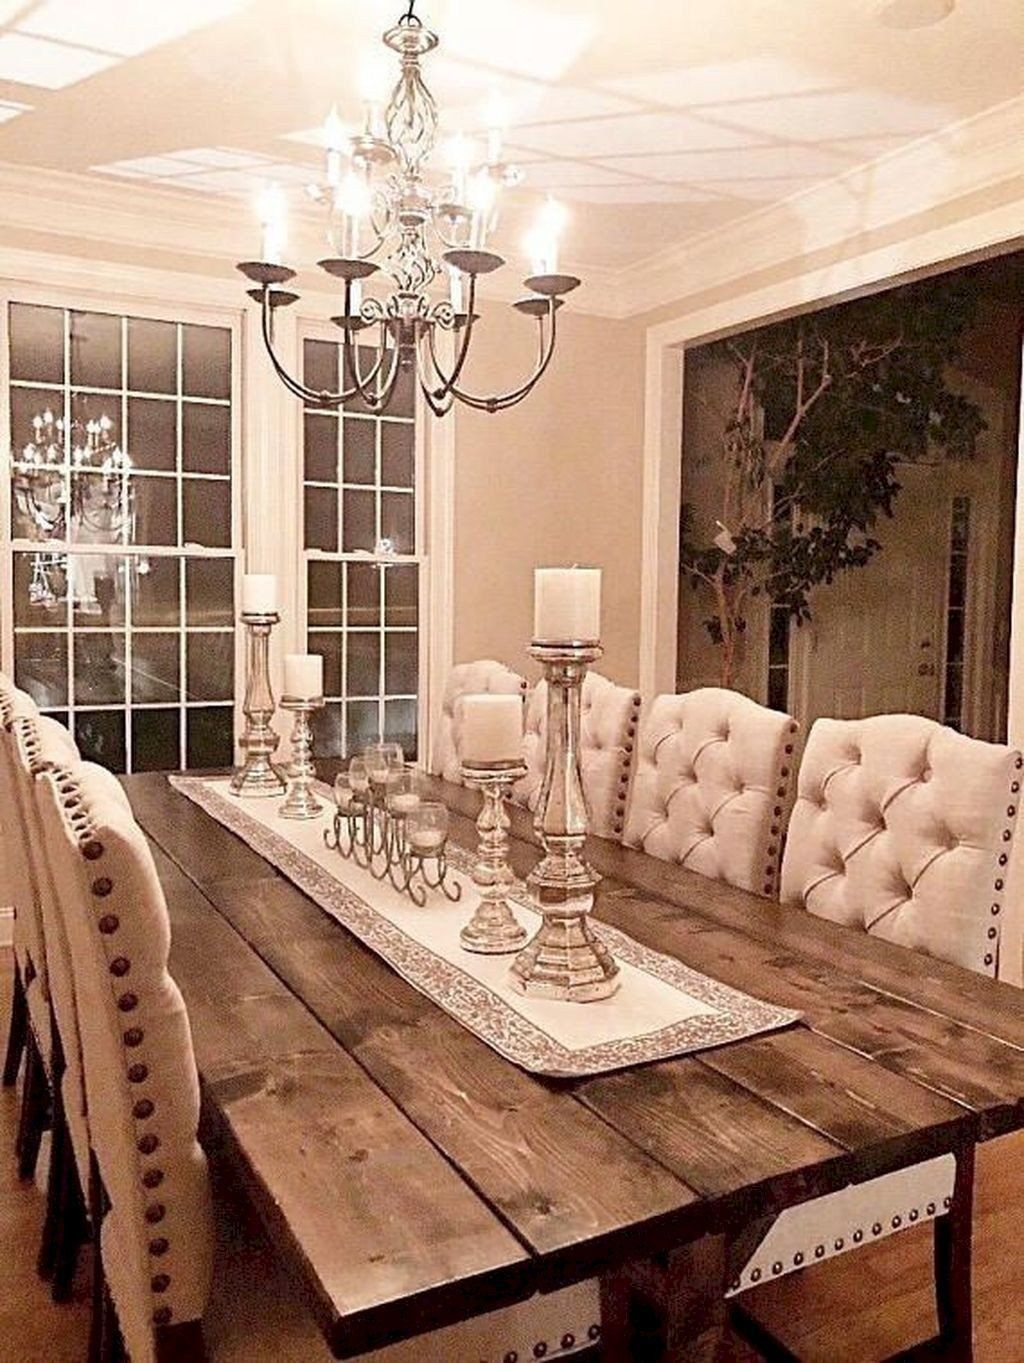 Living Room Table Decor Ideas 80 Rustic Dining Room Table Decor Ideas In 2020 Farm Table Dining Room Farmhouse Dining Room Farm House Living Room